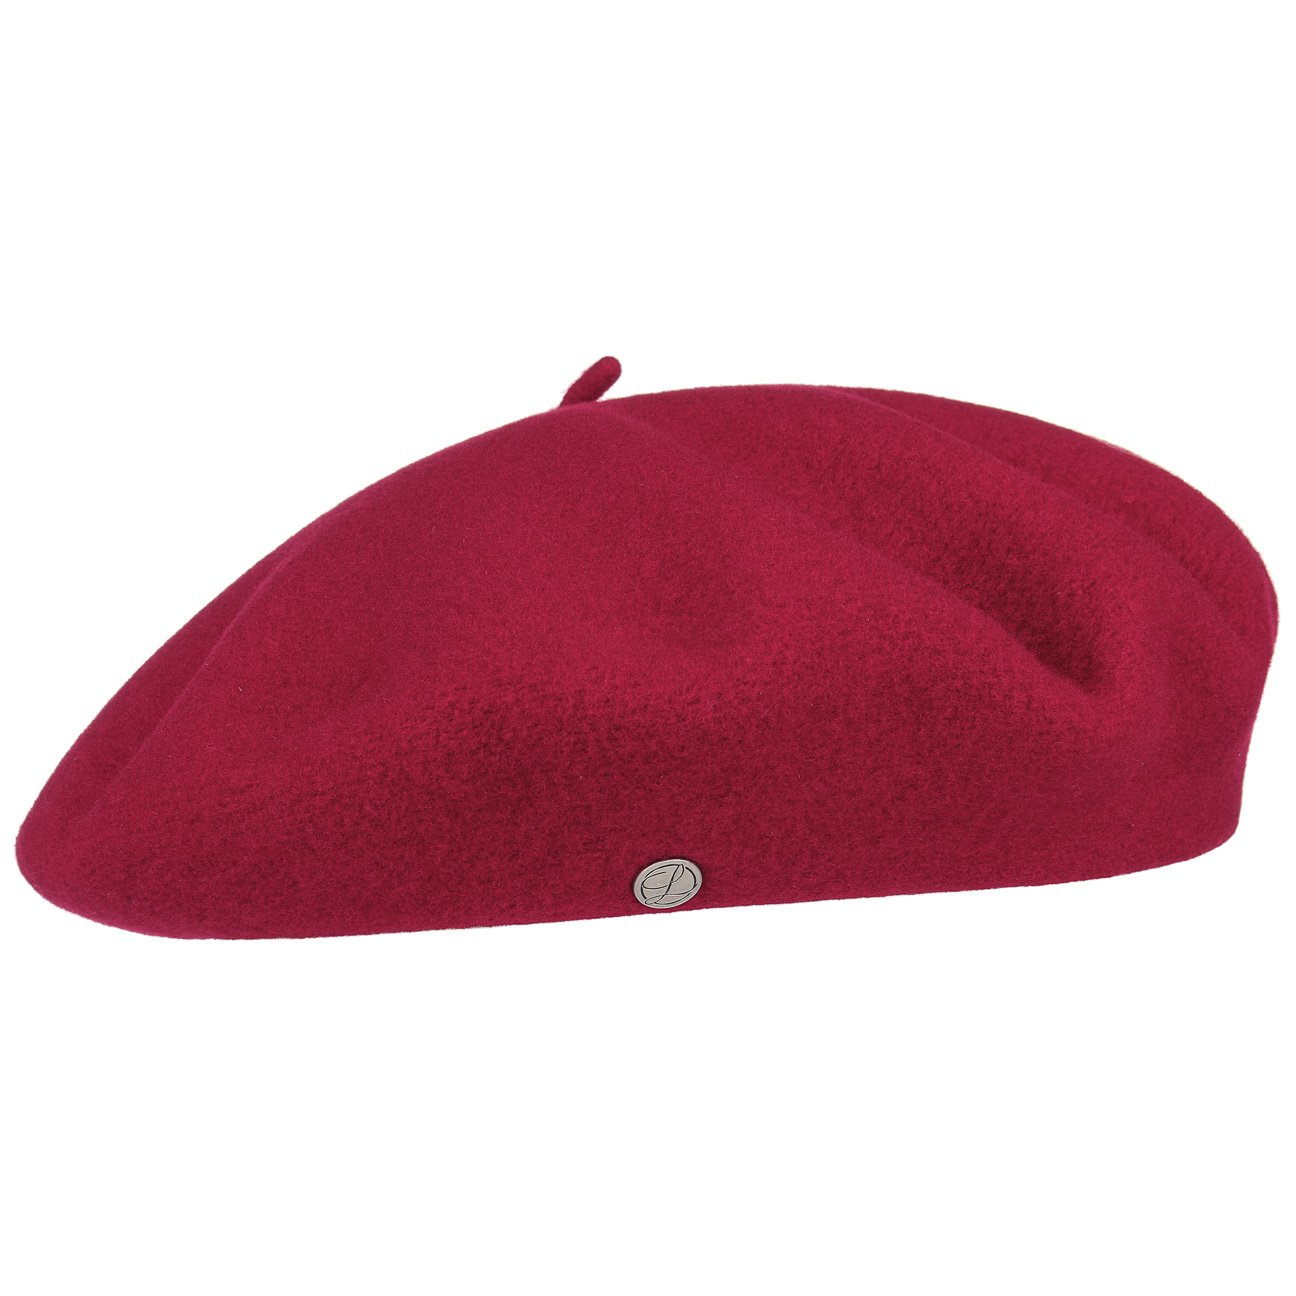 Authentique Classic Wool Beret - Bordeaux